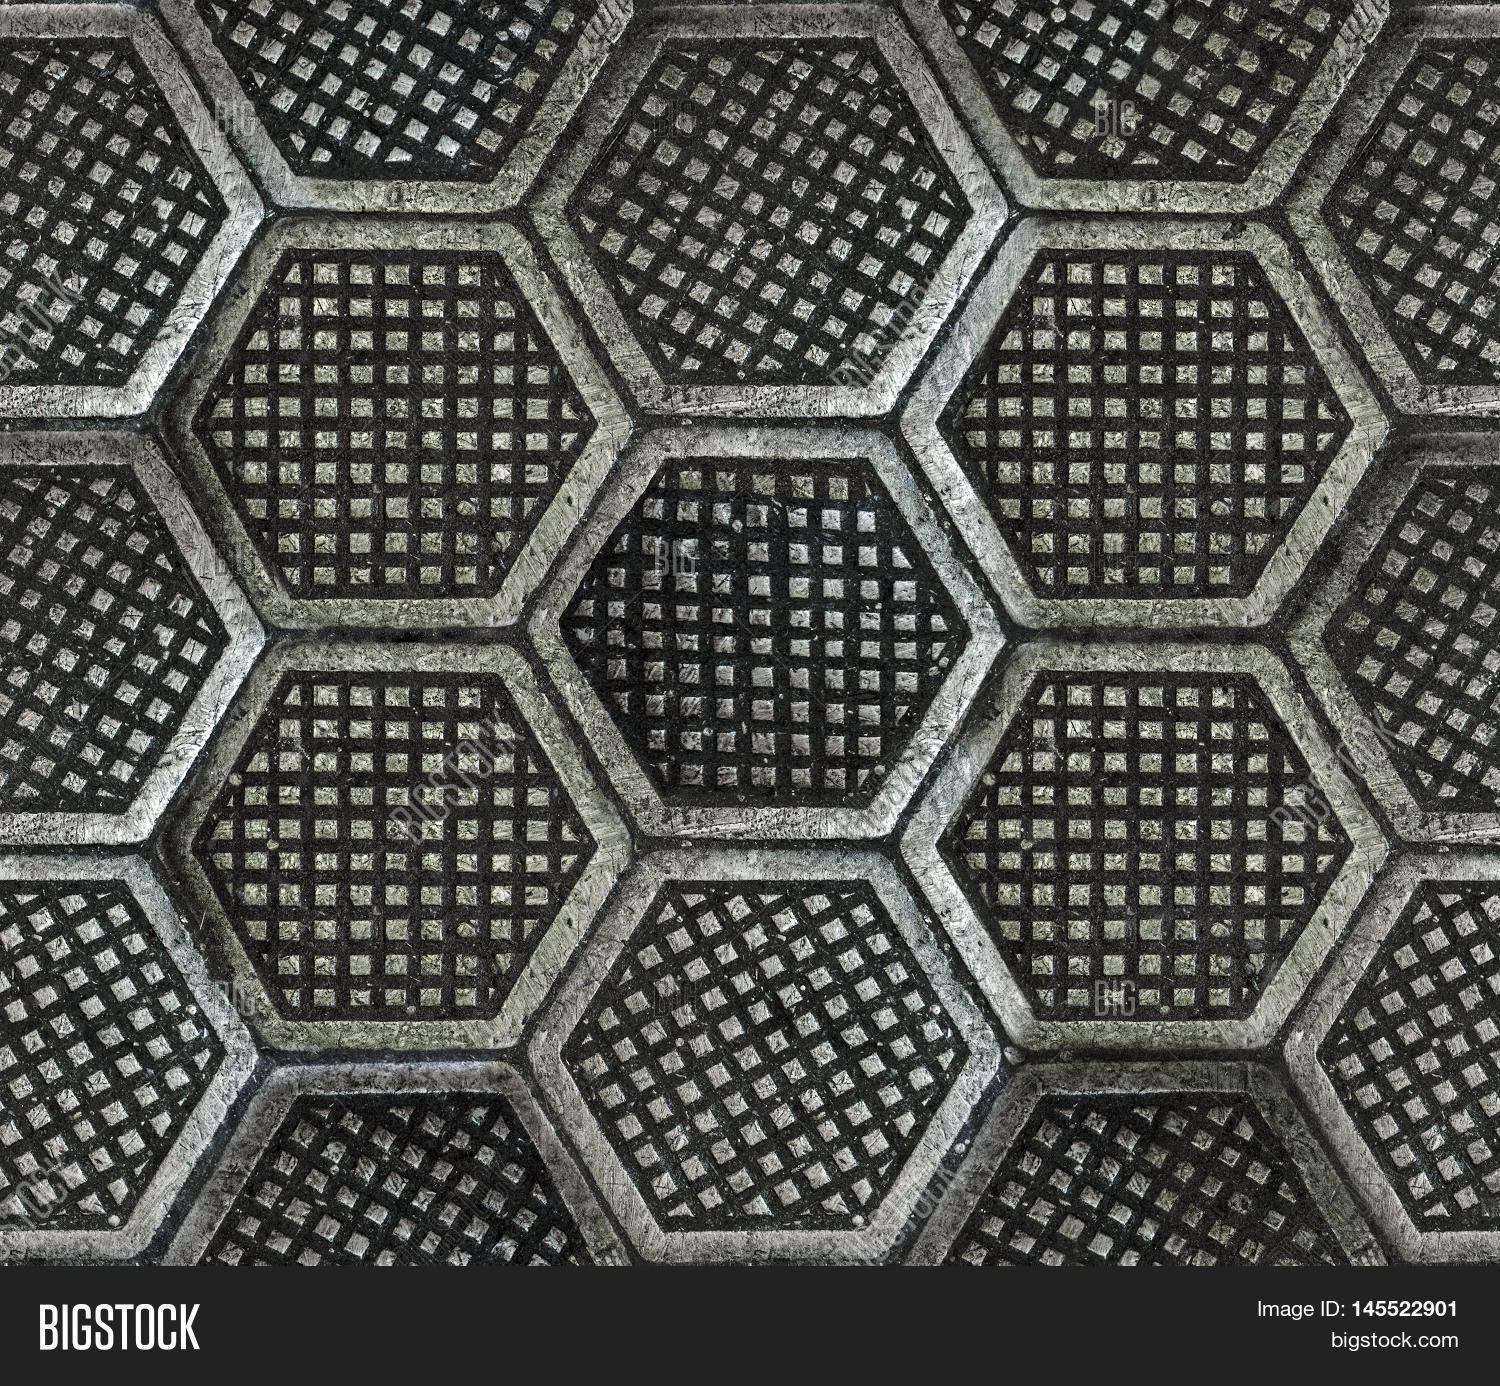 Seamless texture of factory floor made of hexagonal cast iron tiles Dirty dark and old style - Factory Floor Plans